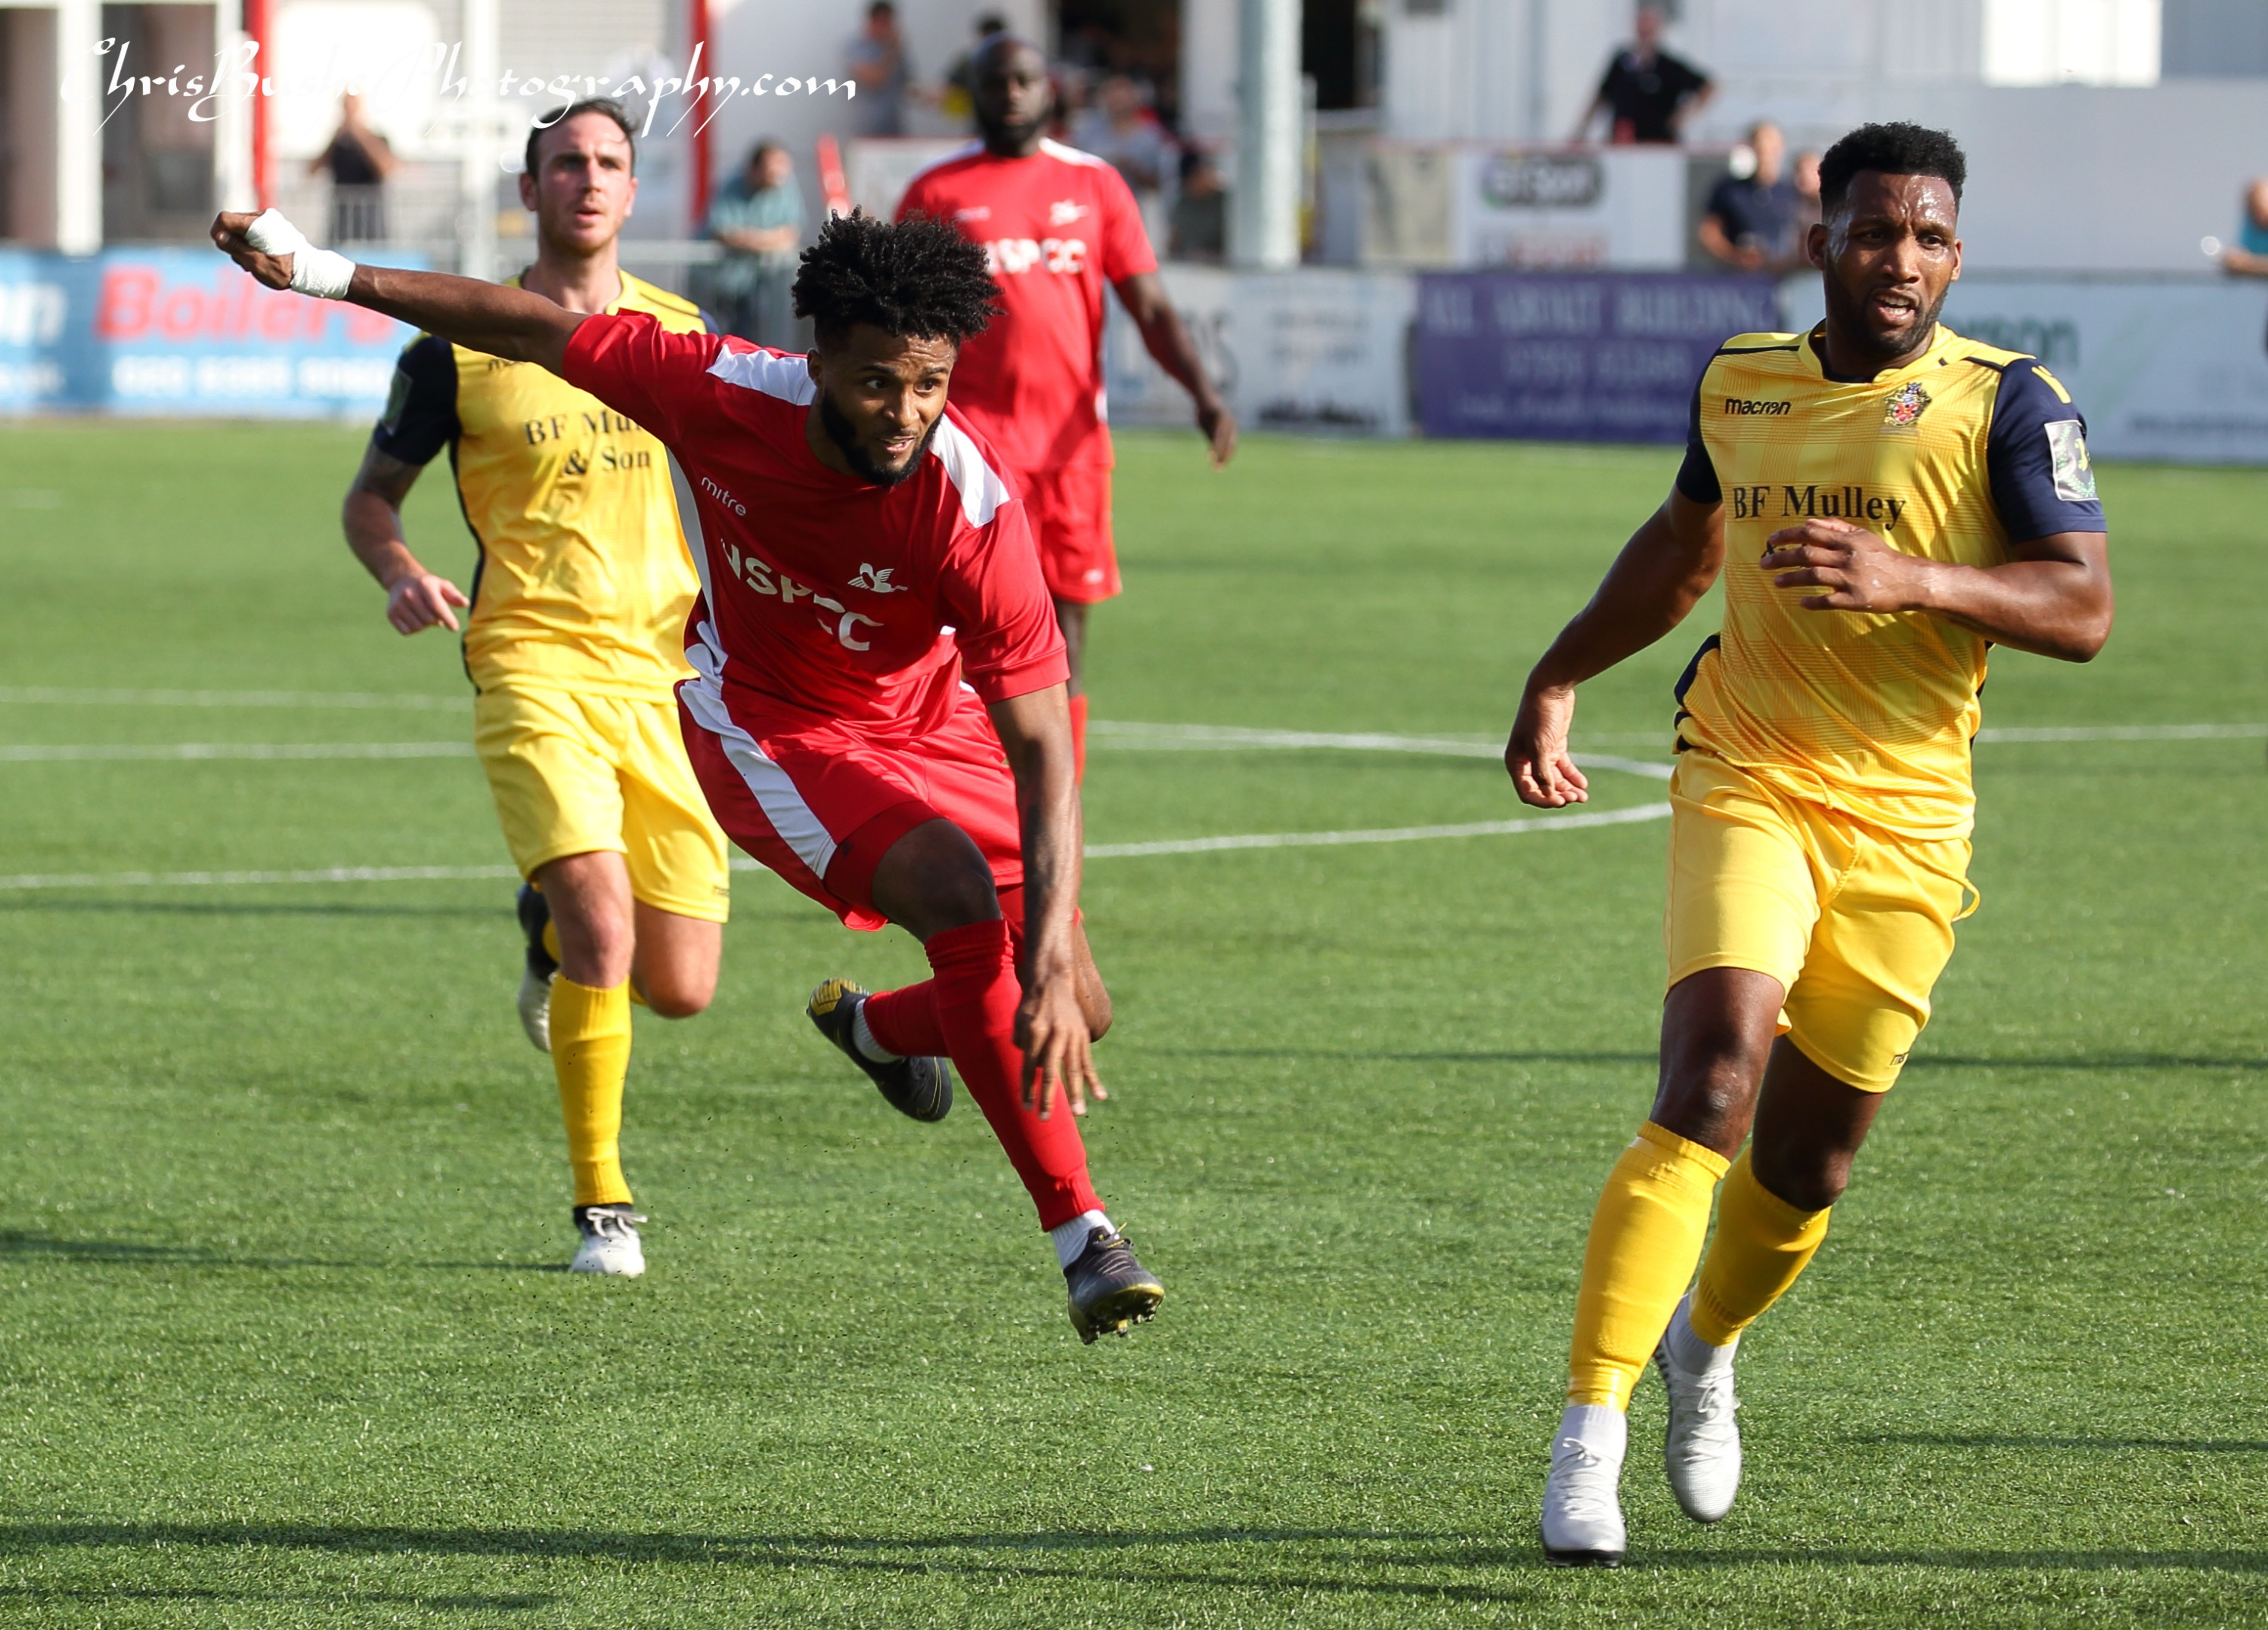 Ricky korboa Carshalton shoots in second half